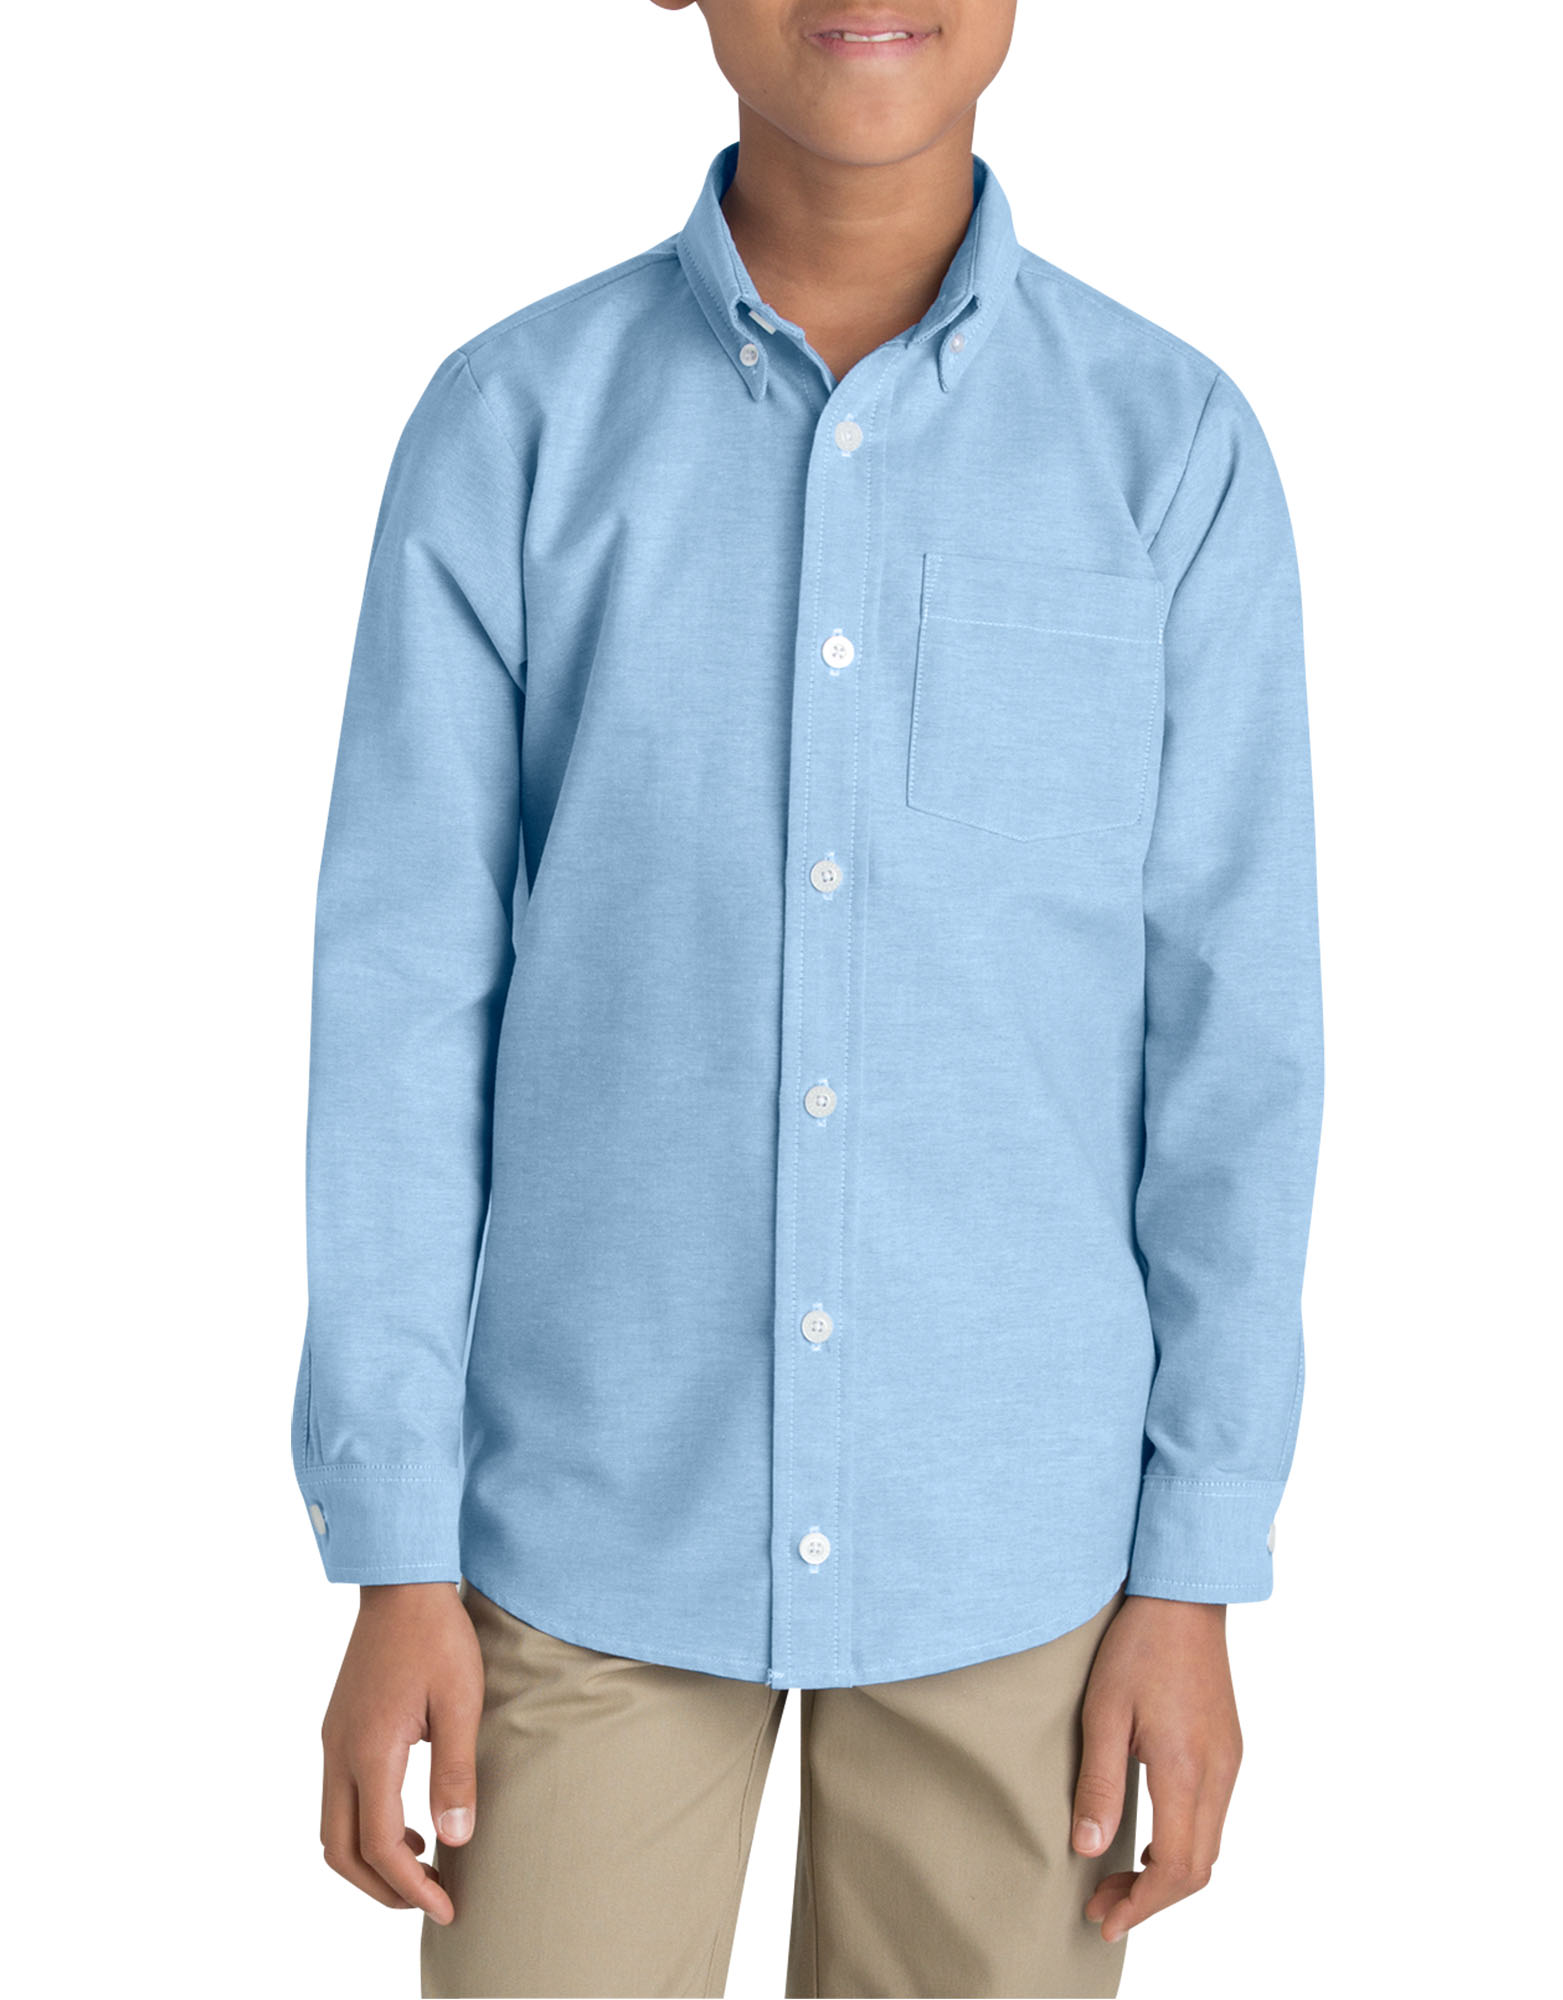 Boys' Long Sleeve Oxford Shirt, 6-20 - Light Blue (LB)